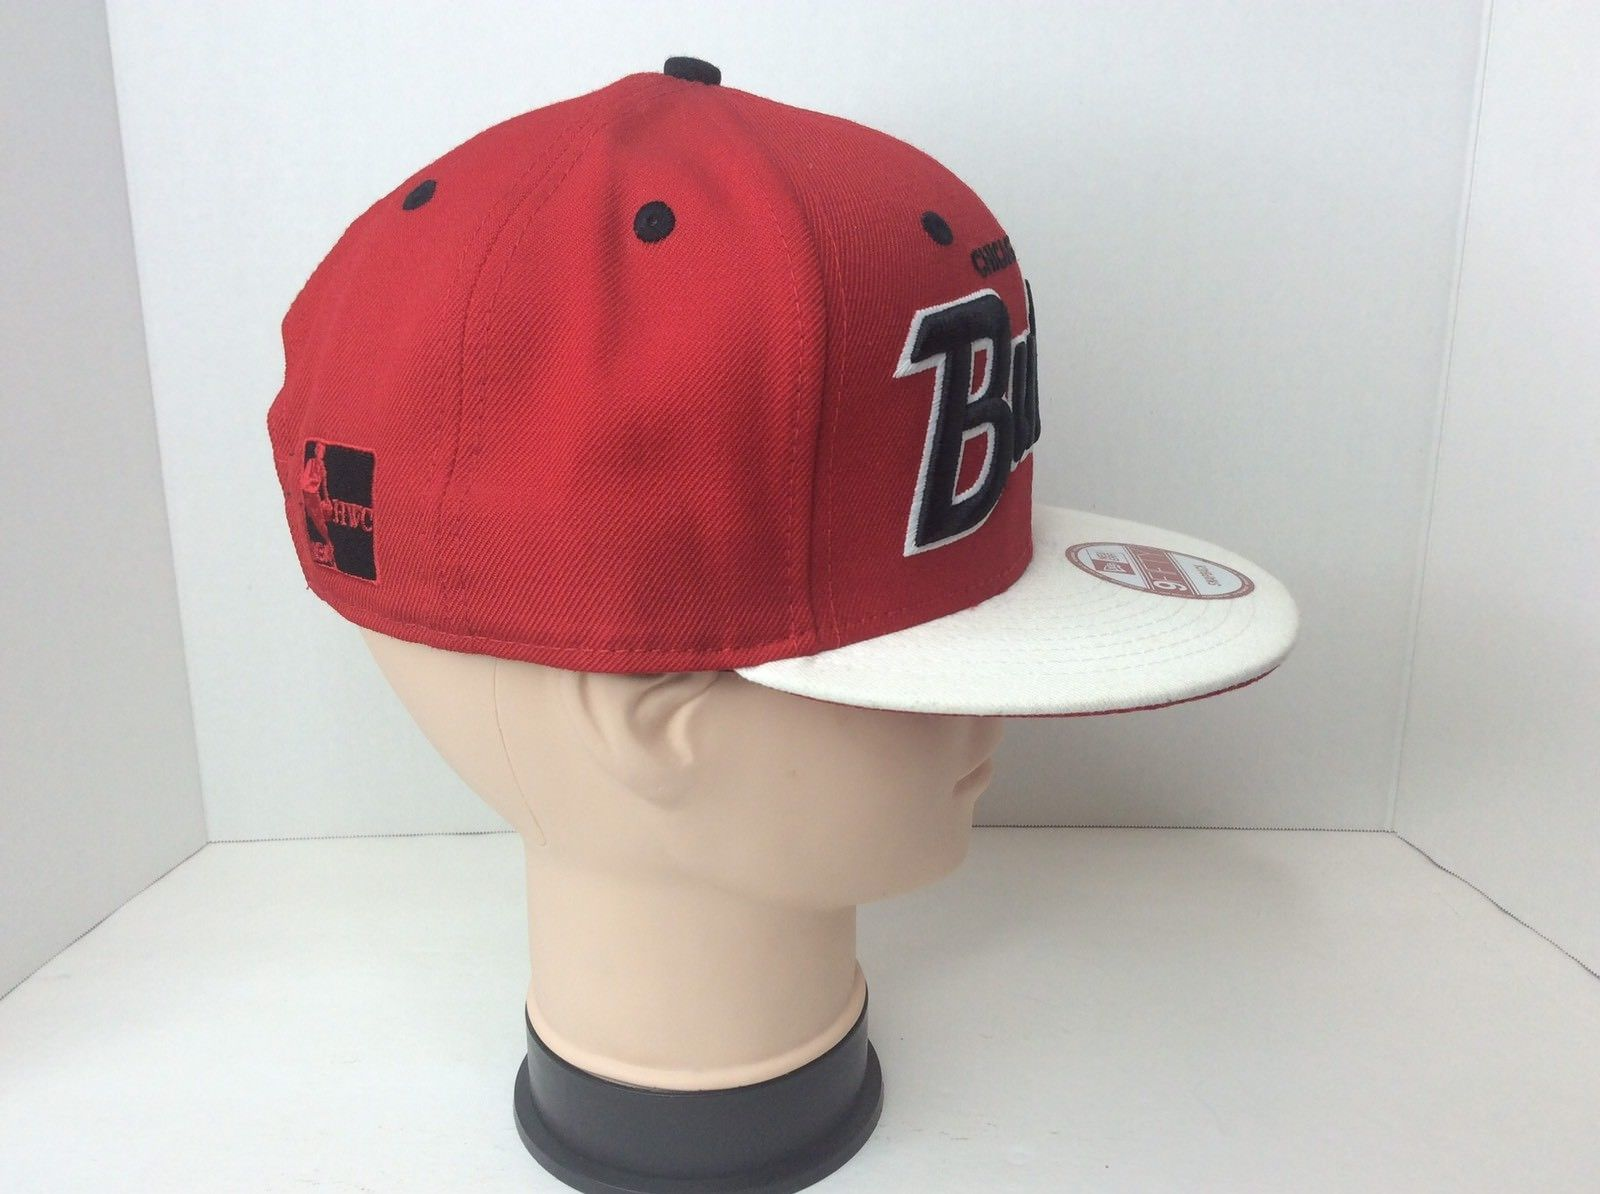 New Era 9Fifty Snapback Chicago Bulls Adjustable Hat Cap Red White Spell Out